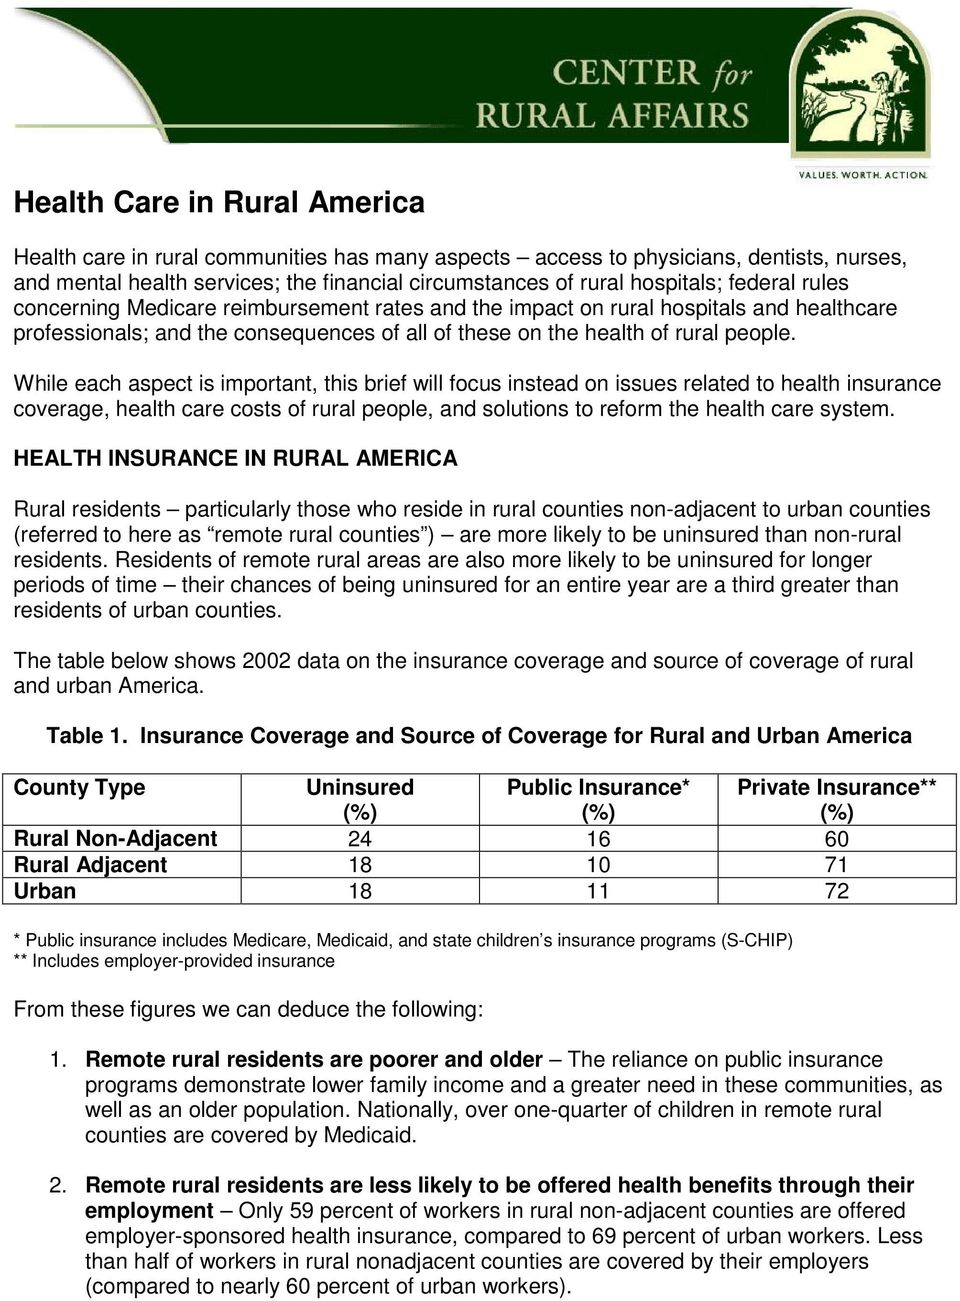 While each aspect is important, this brief will focus instead on issues related to health insurance coverage, health care costs of rural people, and solutions to reform the health care system.